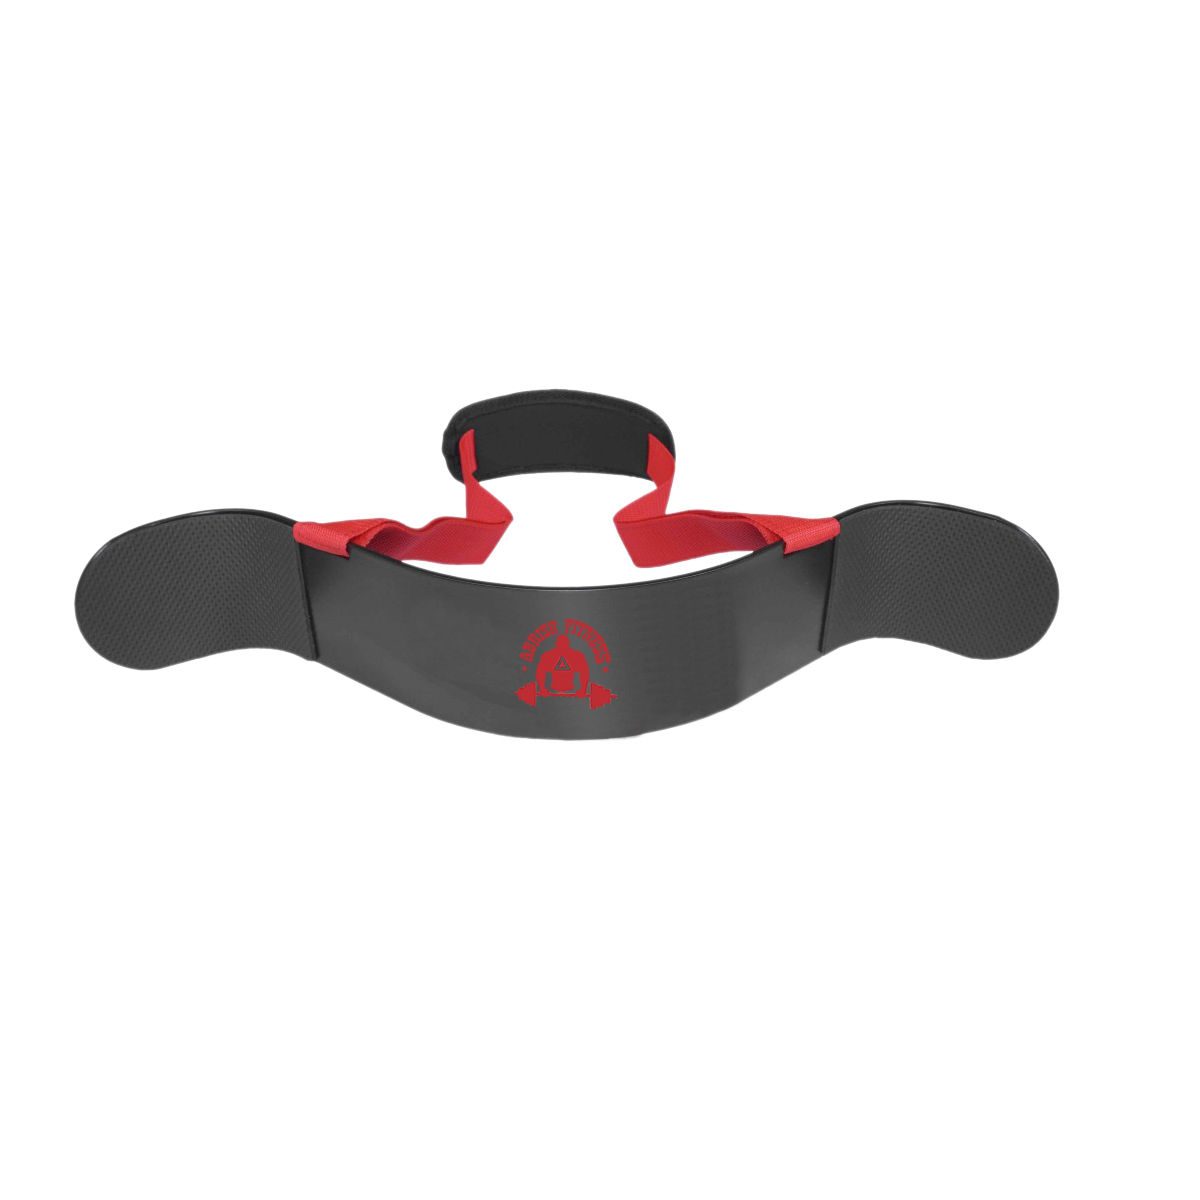 GRAY ARM BLASTER WITH RED BELT ON POLYESTER WEB